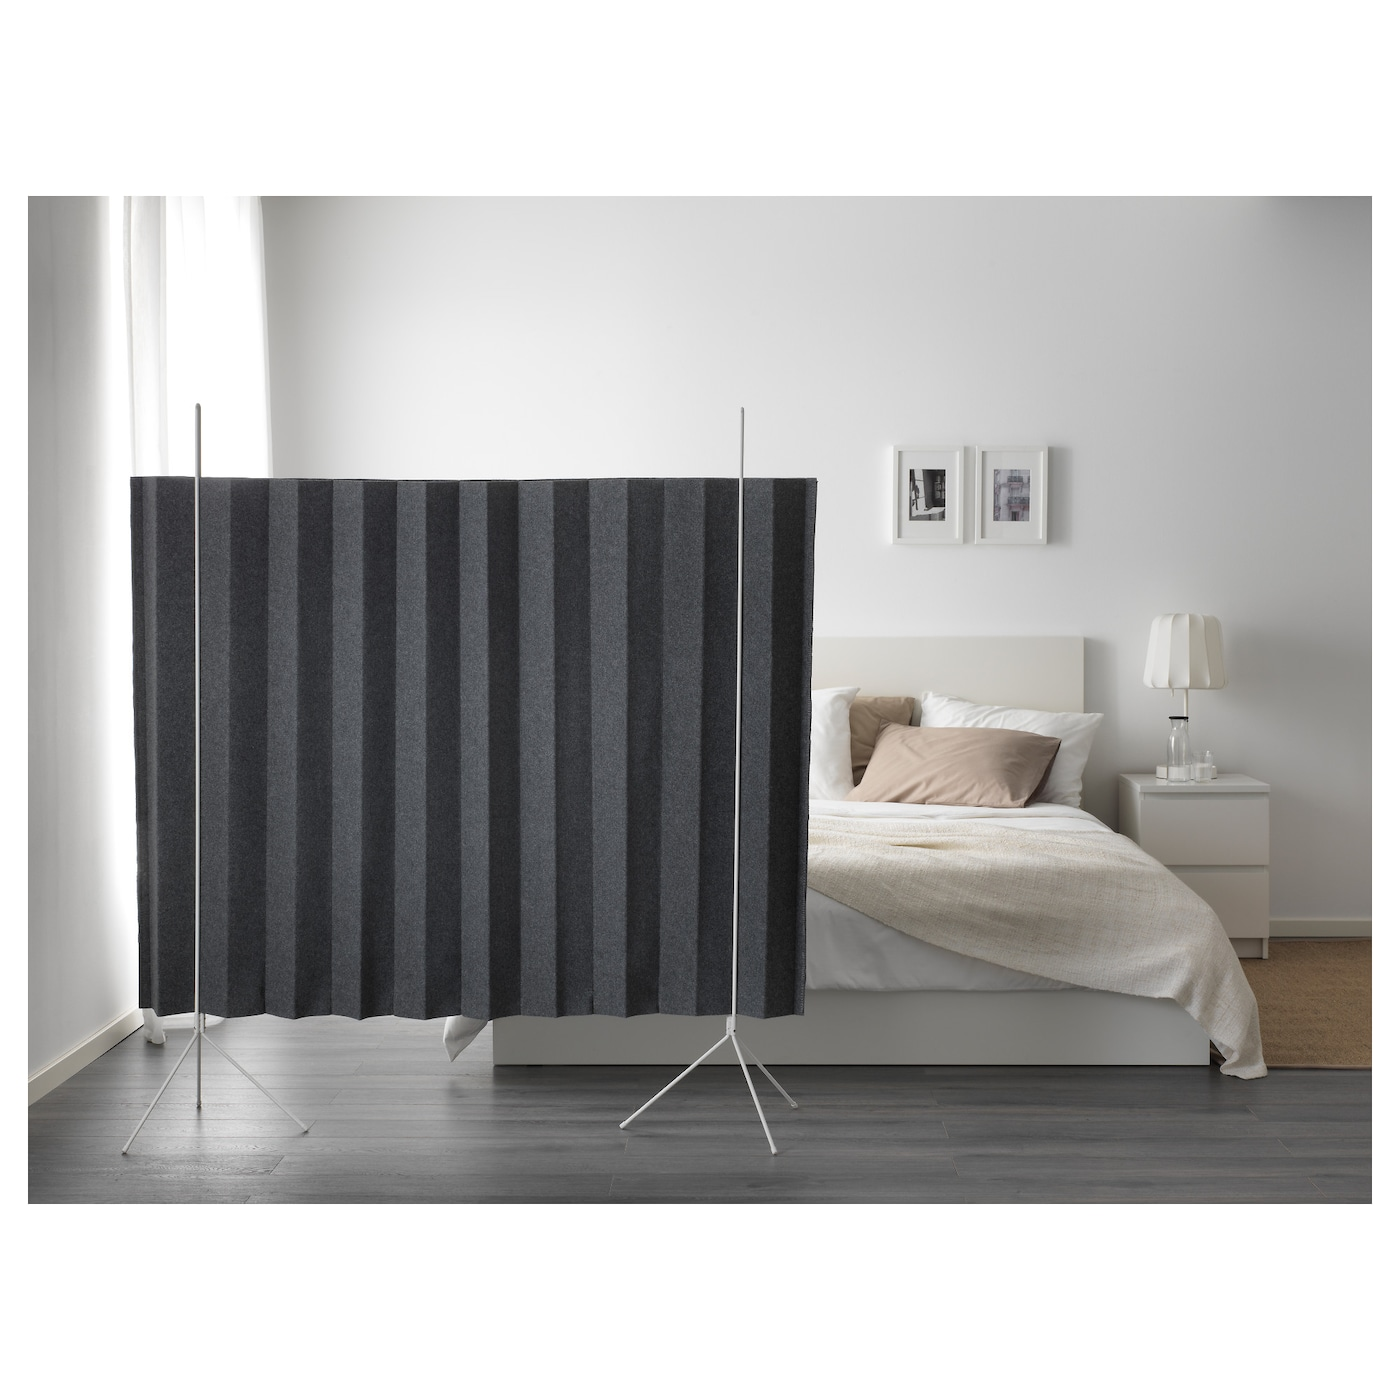 ikea ps 2017 room divider 150x158 cm ikea